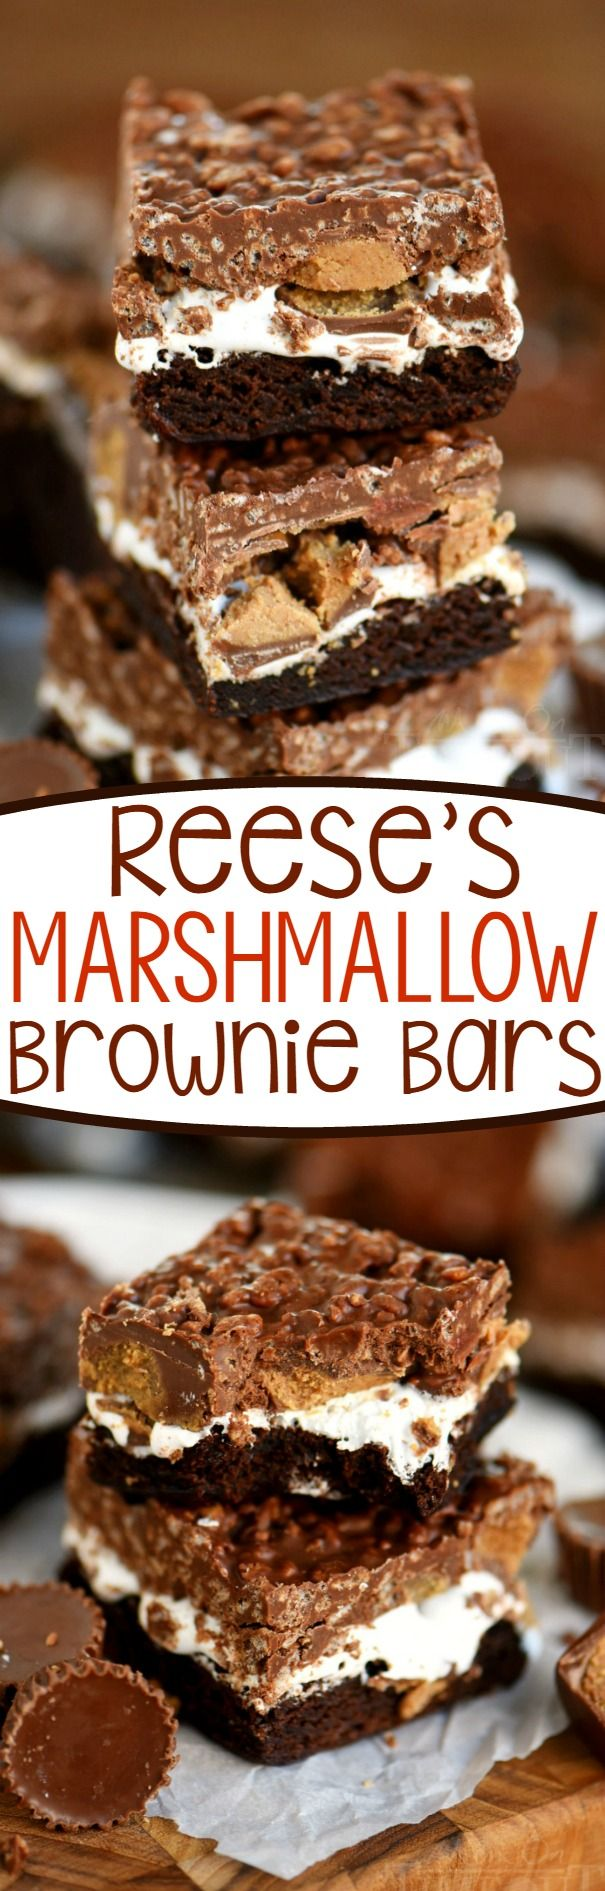 Reese's Marshmallow Brownie Bars are the perfect dessert for a crowd!